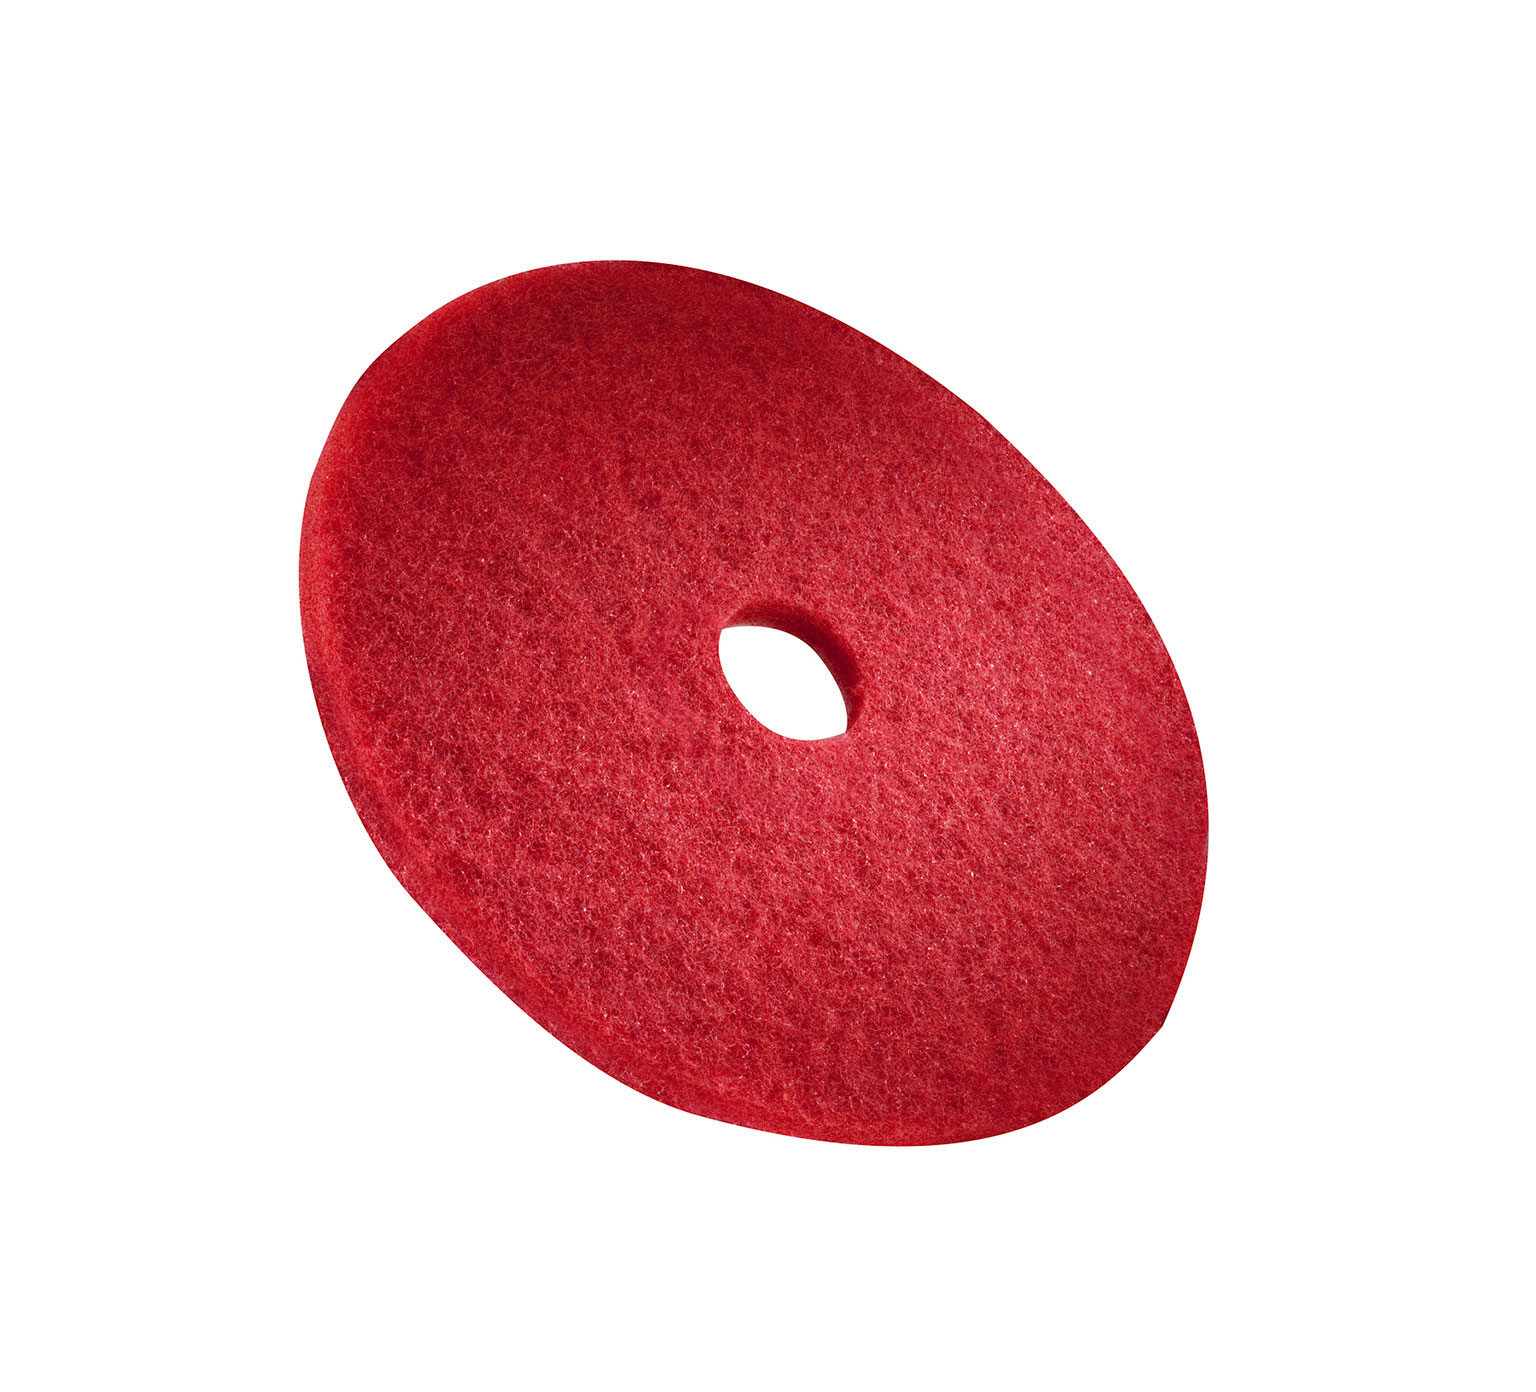 17261 3M Red Buffing Pad – 20 in / 508 mm alt 1